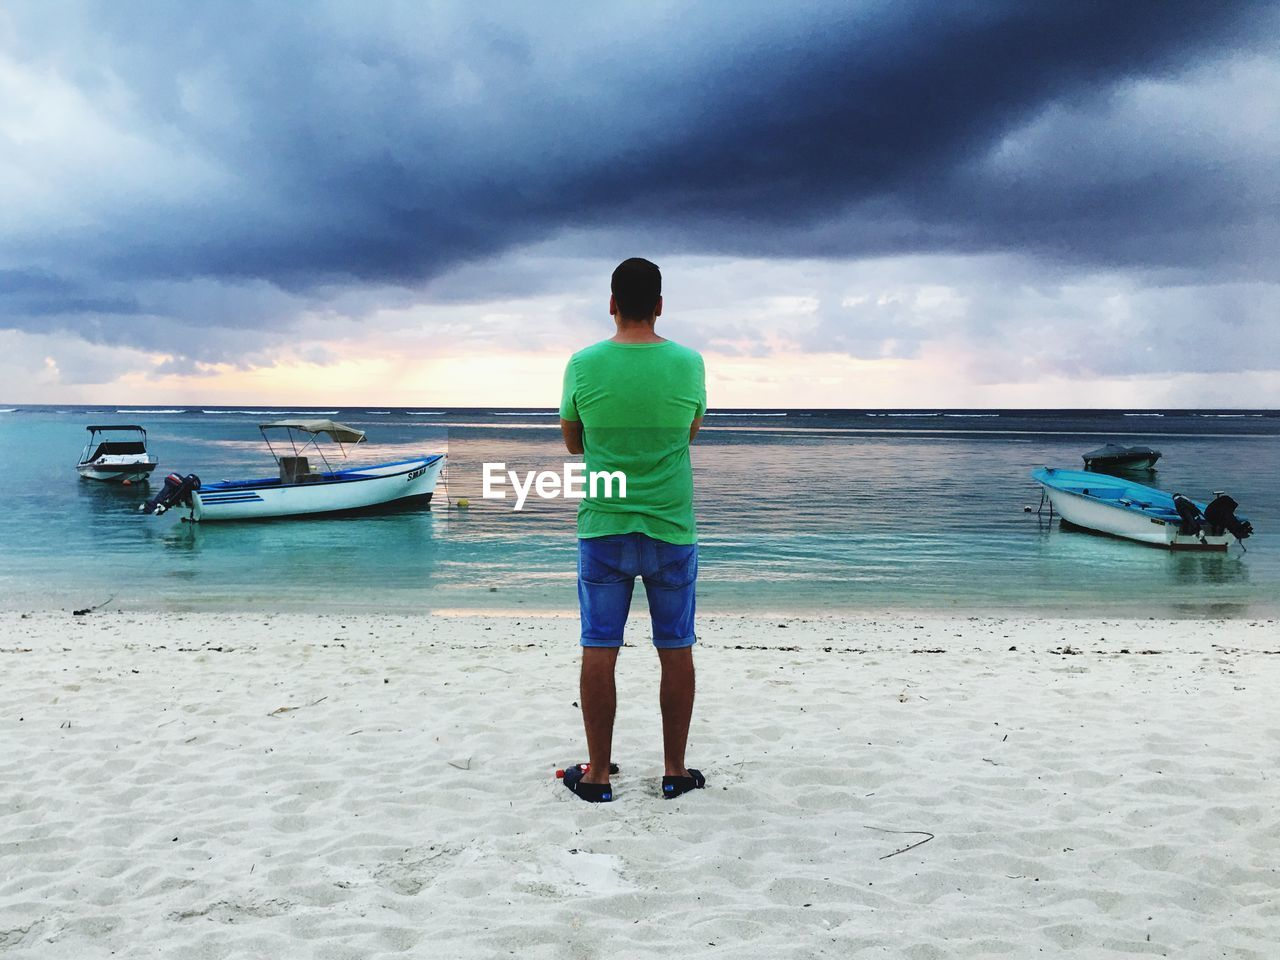 sea, beach, water, sky, cloud - sky, sand, horizon over water, shore, nature, nautical vessel, full length, one person, transportation, scenics, standing, mode of transport, rear view, real people, beauty in nature, moored, casual clothing, outdoors, men, day, one man only, young adult, adult, people